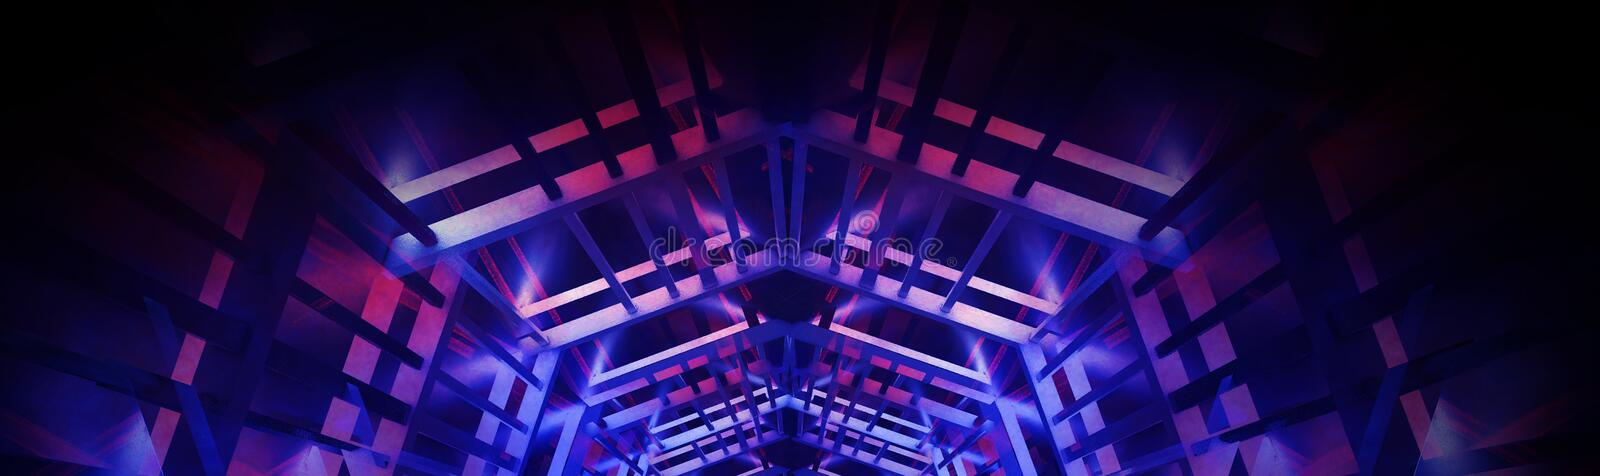 Abstract neon panoramic background, blue and pink color, black, the play of light. stock image